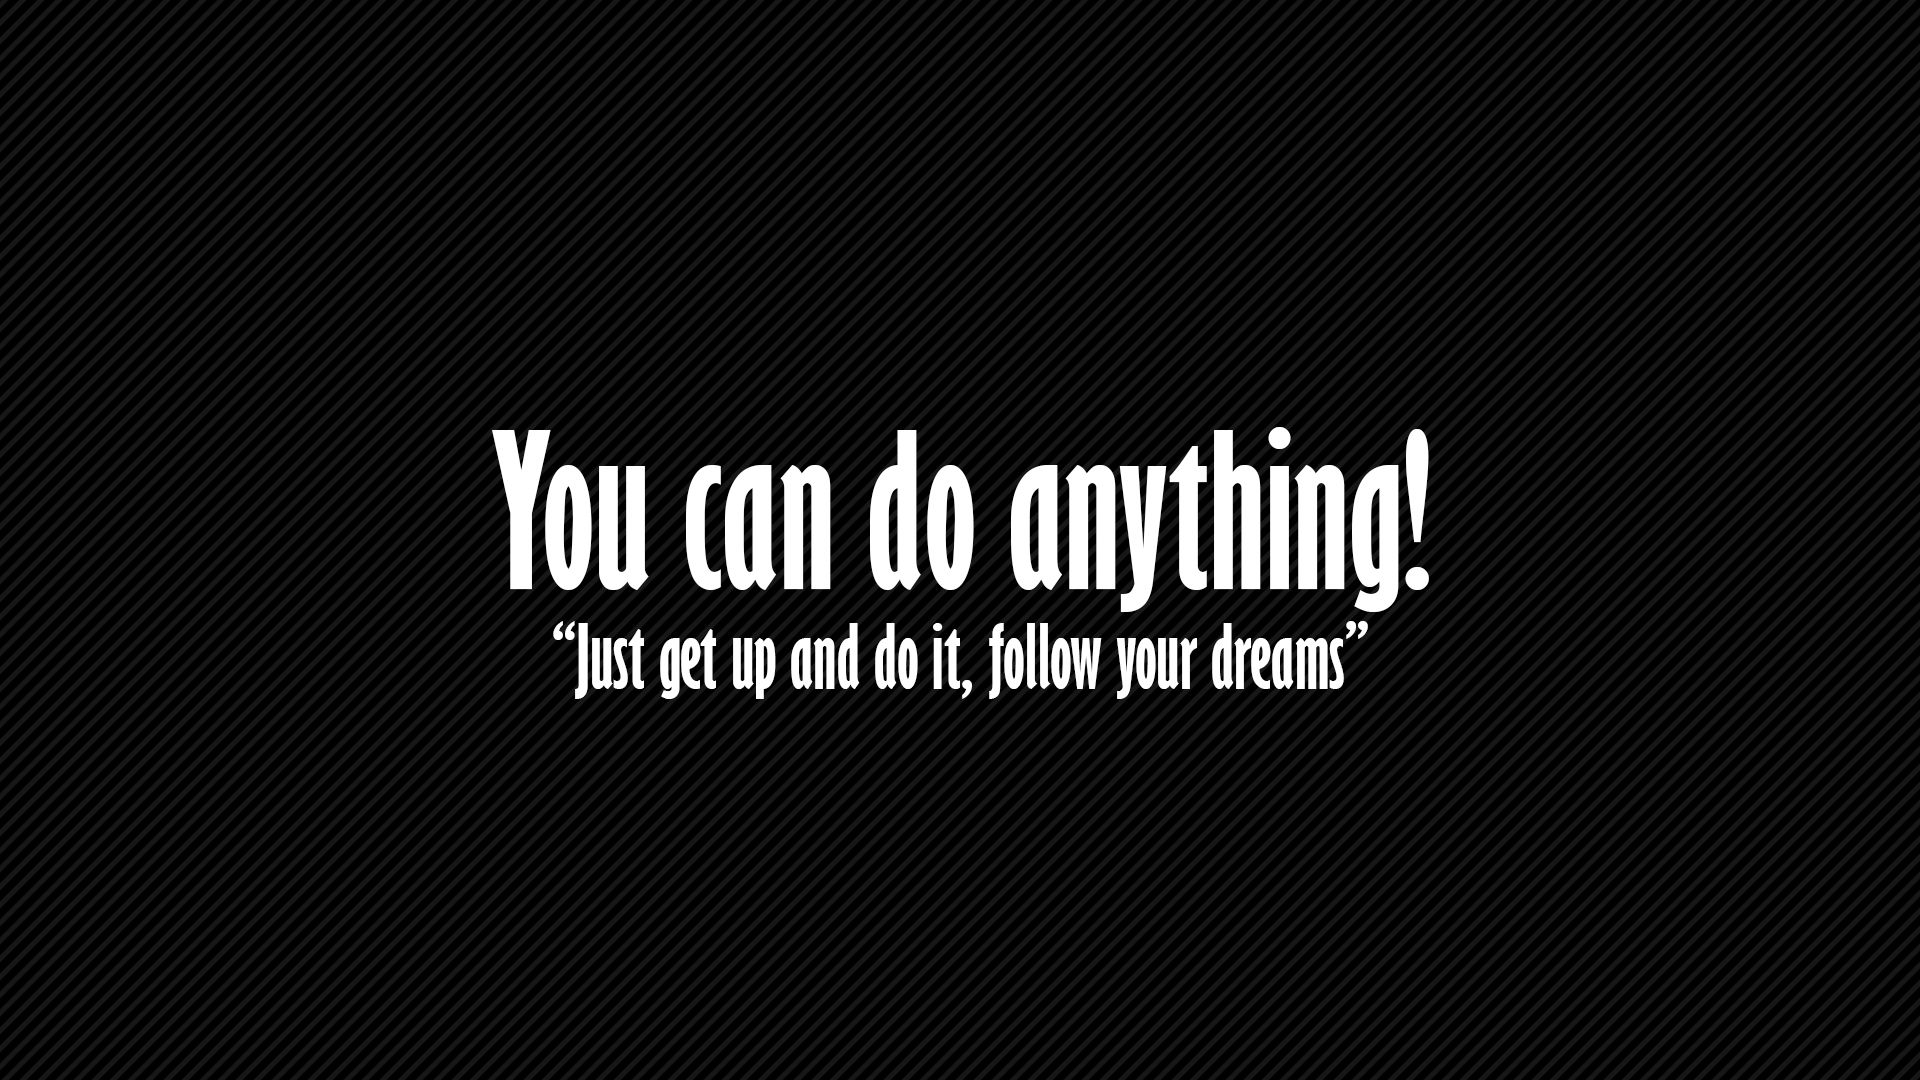 You Can Do Anything Computer Wallpapers Desktop Backgrounds 1920x1080 In 2020 Motivational Quotes Wallpaper Inspirational Quotes Wallpapers Inspirational Quotes